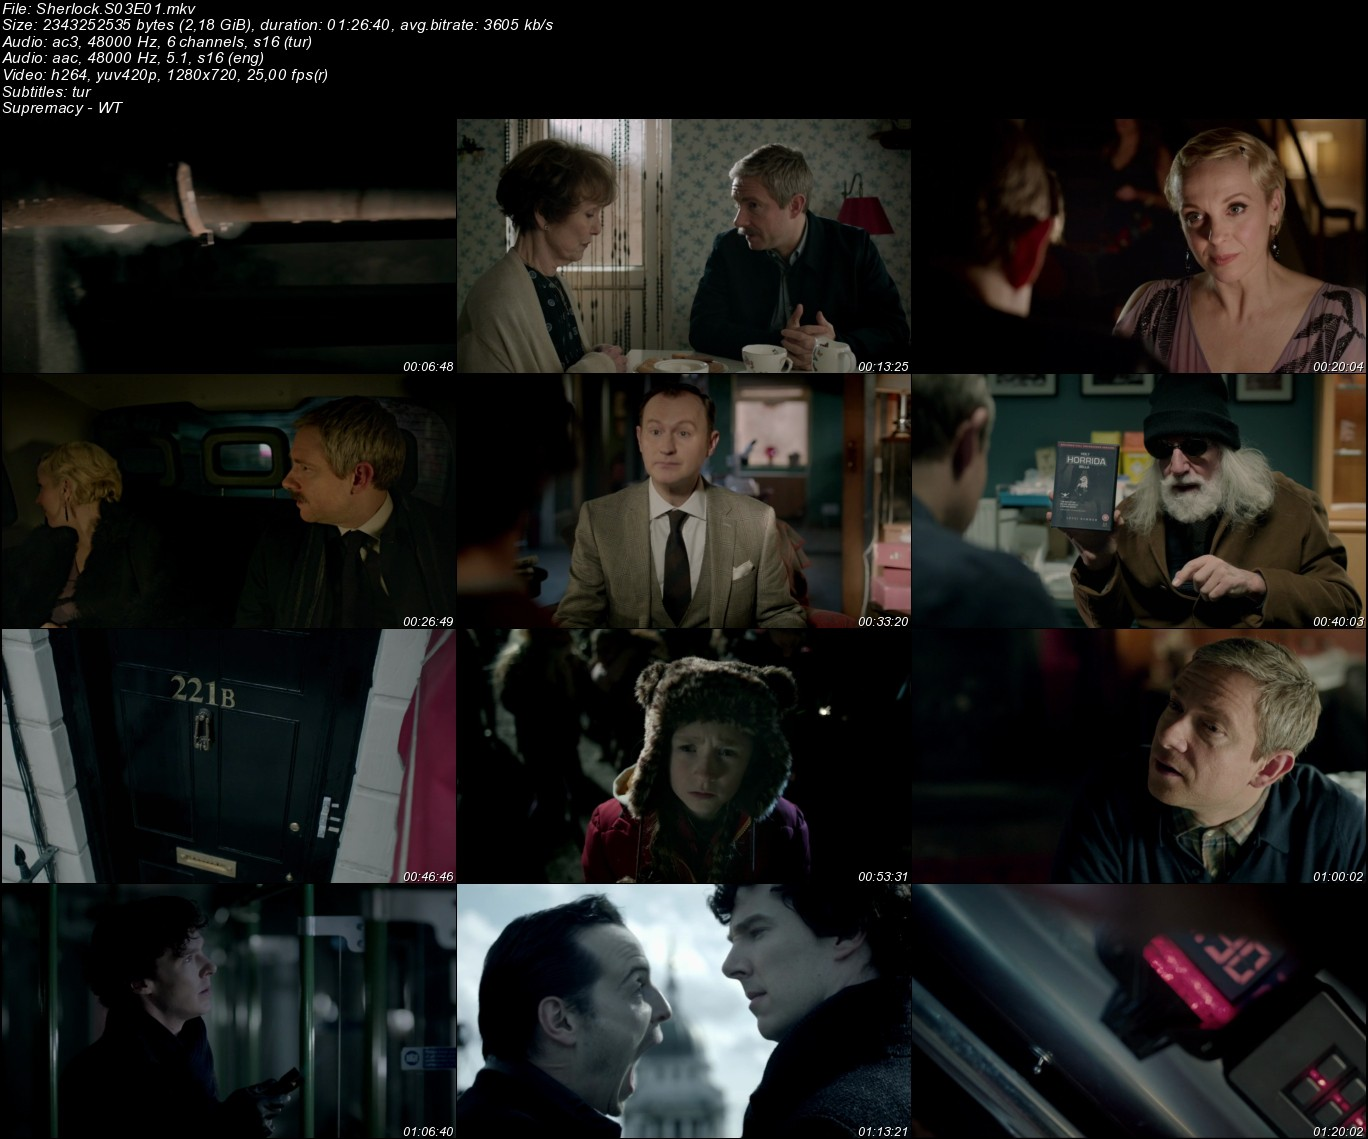 Sherlock - 2010 Sezon 1-2-3-4 Dual 720p BluRay indir